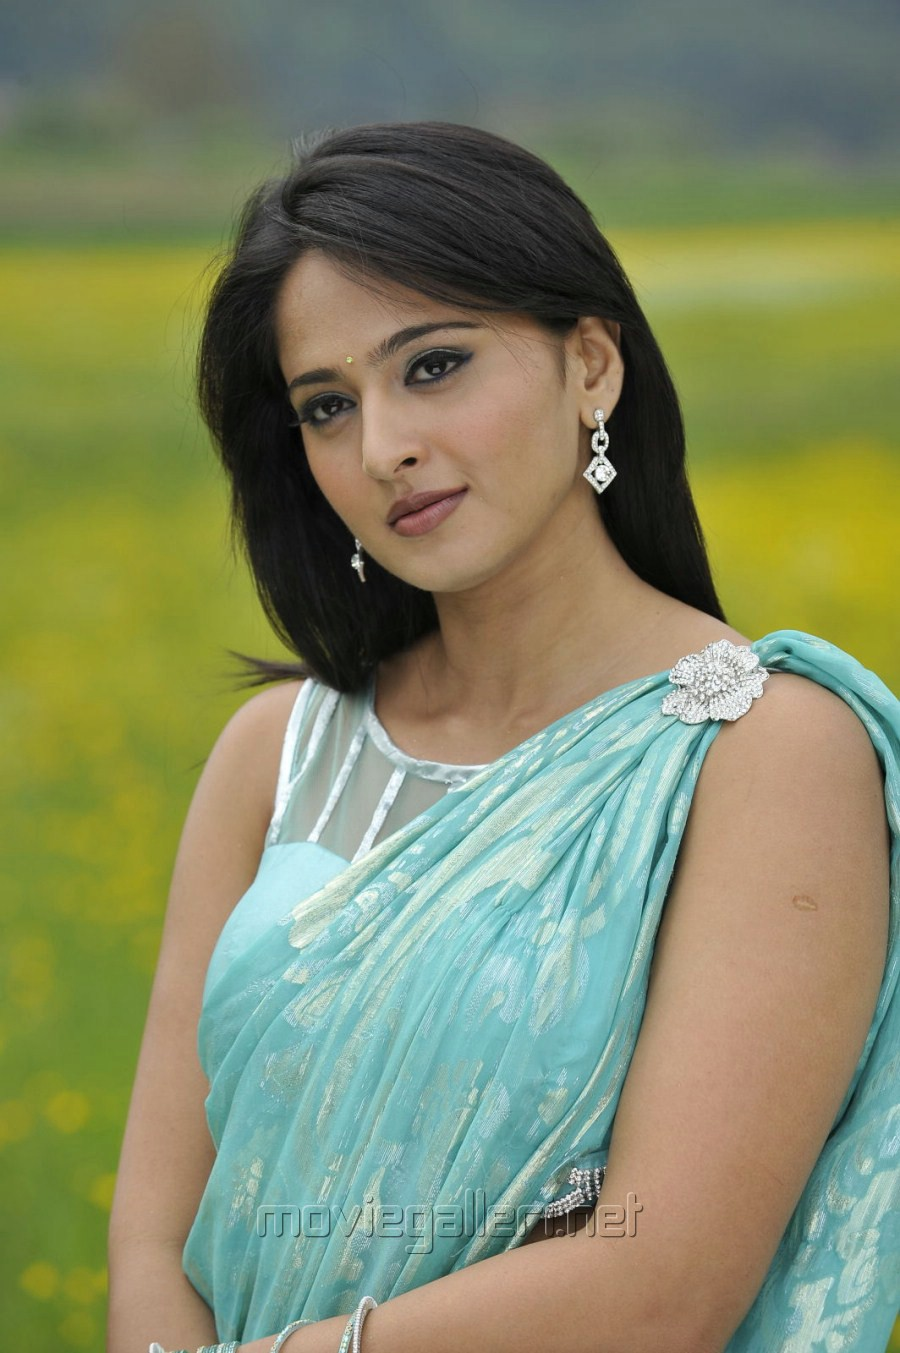 Anushka Shetty Hot Actress Anushka Shetty Hot